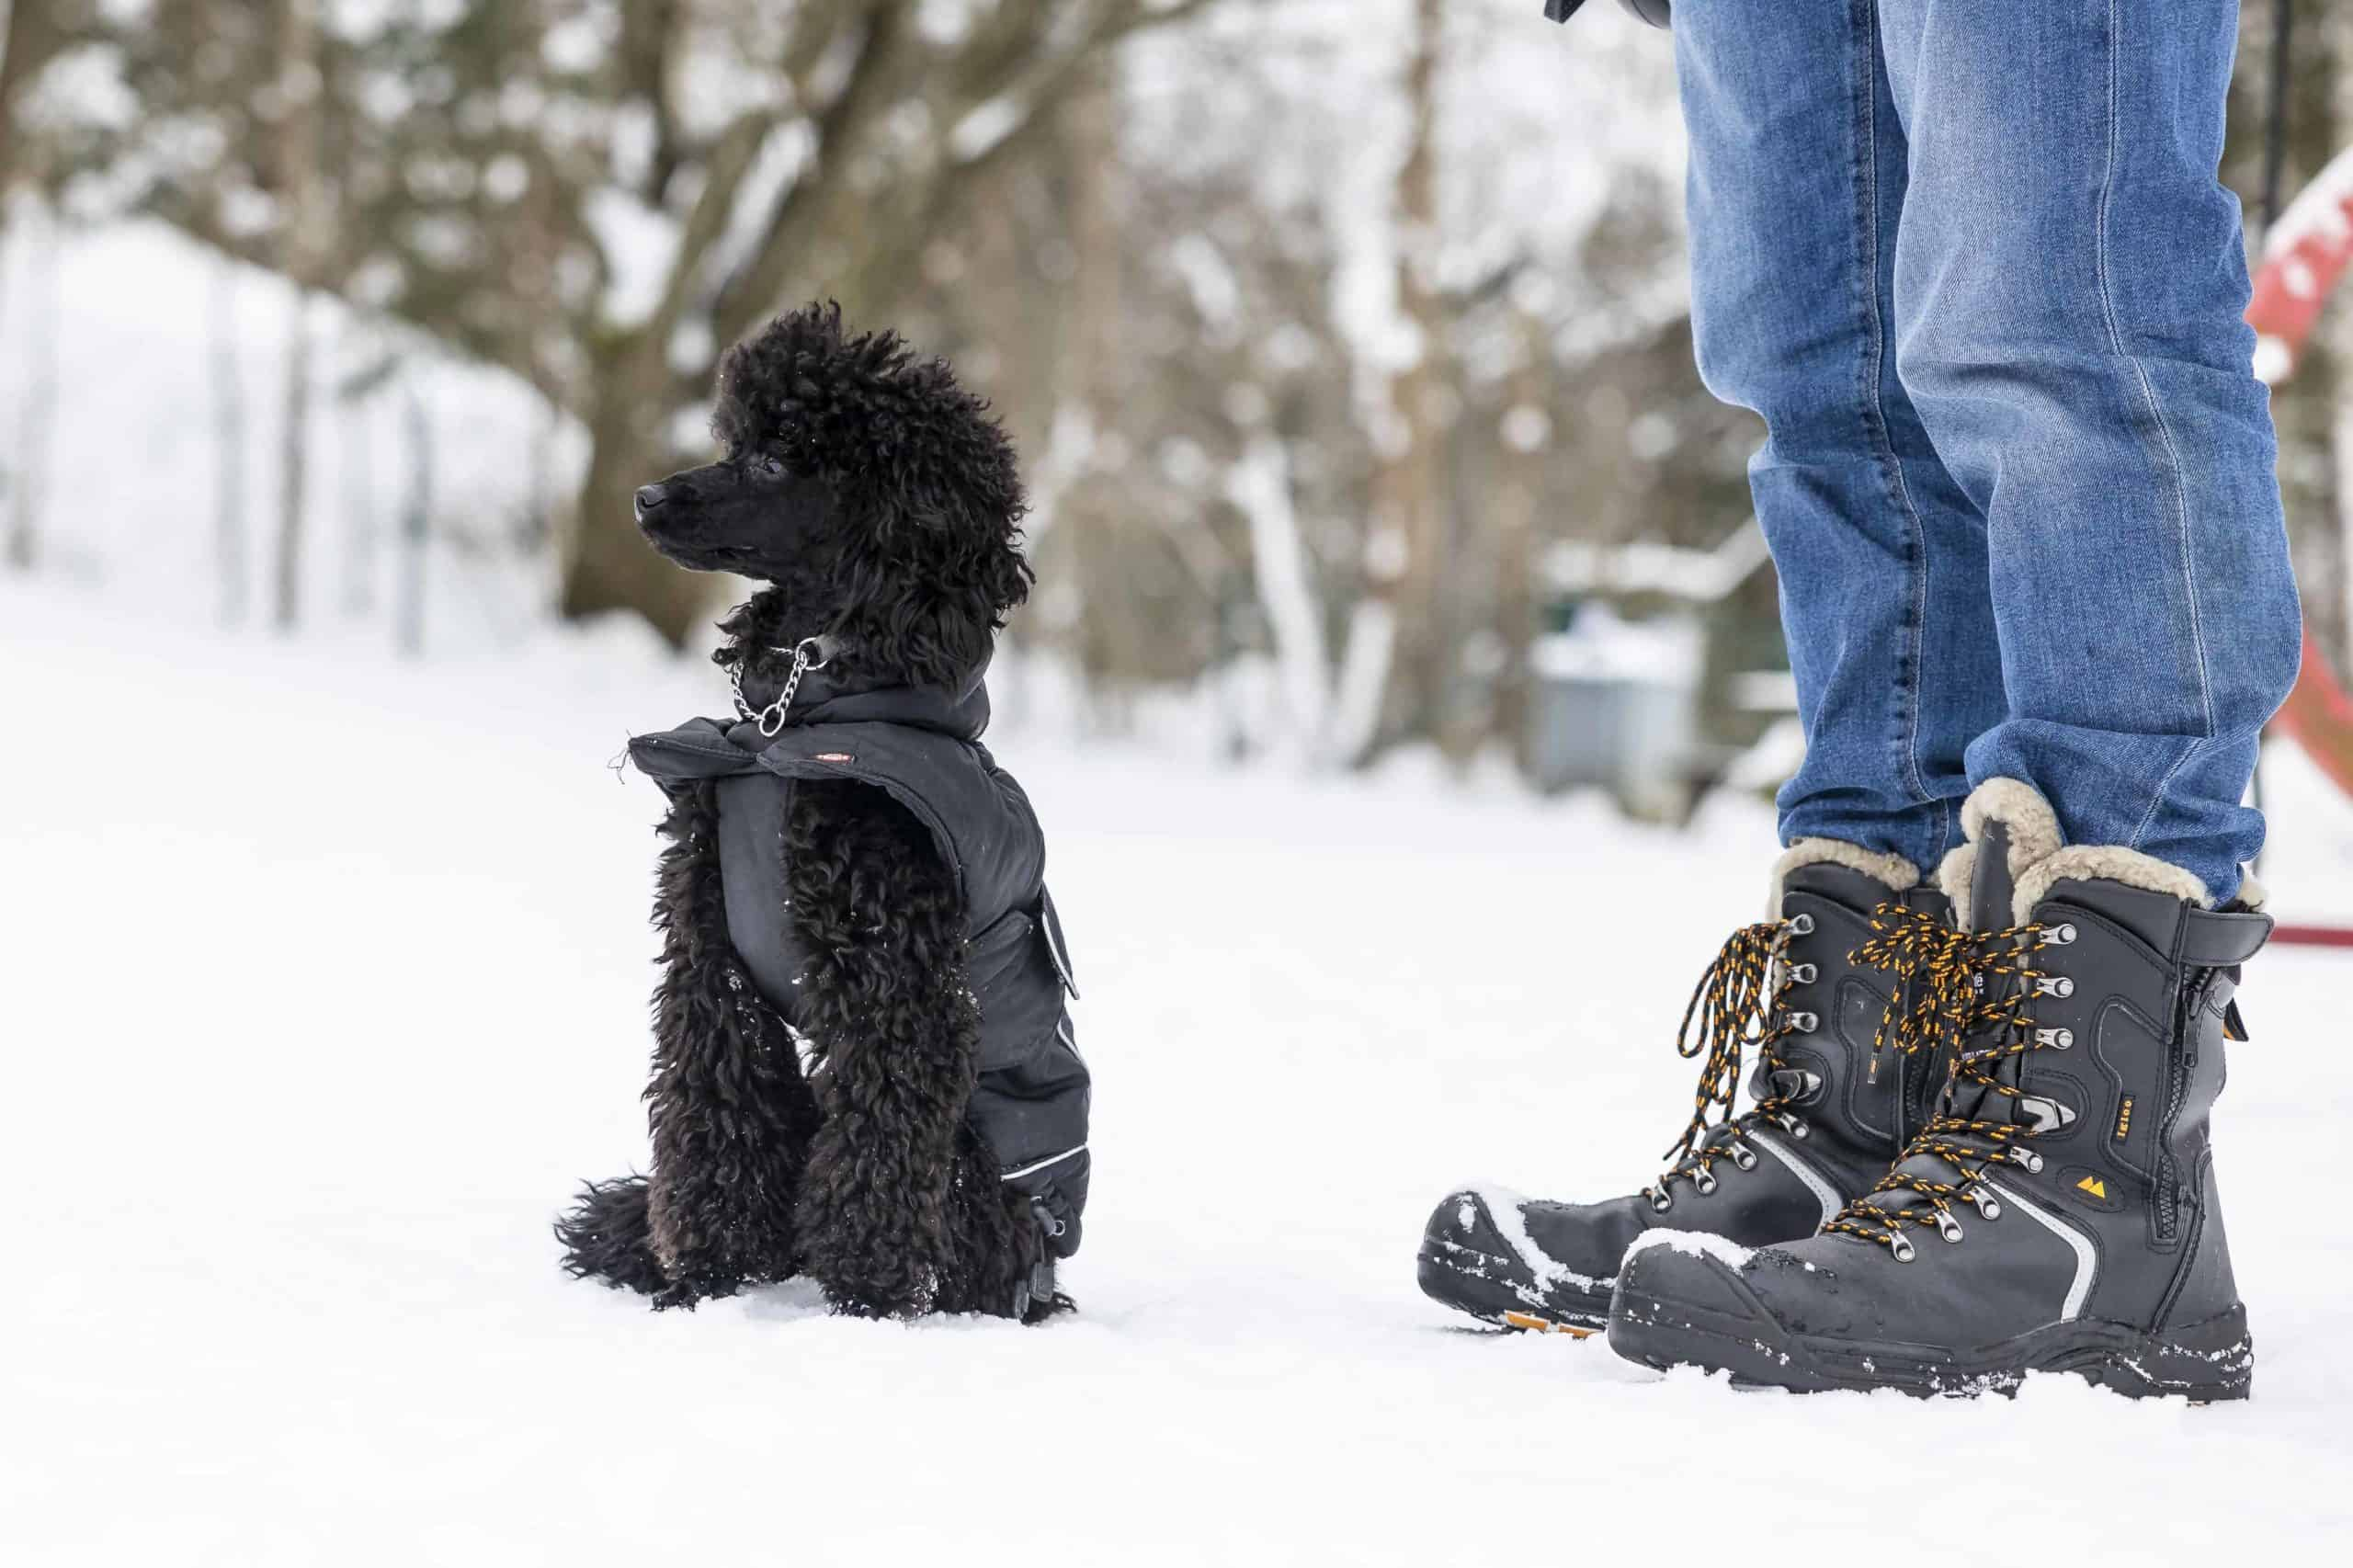 Small black Poodle wears winter coat. Dog owner wears jeans and snow boots. Wondering can poodles handle cold weather? The simple answer is yes. Take precautions like using booties and a coat to protect your dog.